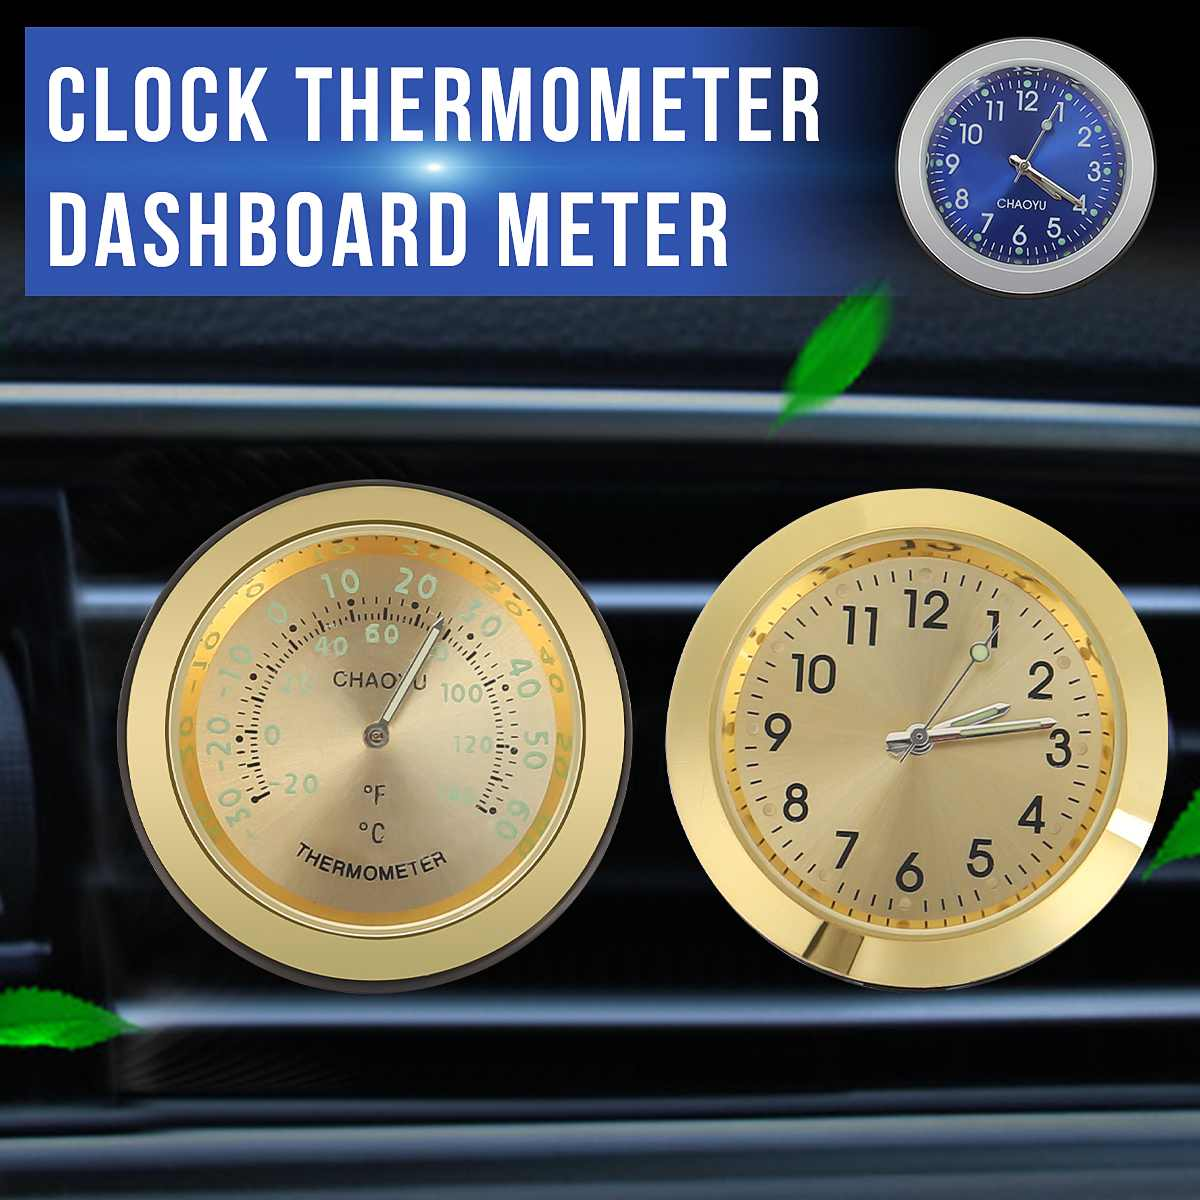 KROAK <font><b>Auto</b></font> Elektronische Uhr Conditioner Air Outlet <font><b>Thermometer</b></font> Dashboard Hygrometer Meter Aromatherapie <font><b>Auto</b></font> Leucht Quarz Uhr image